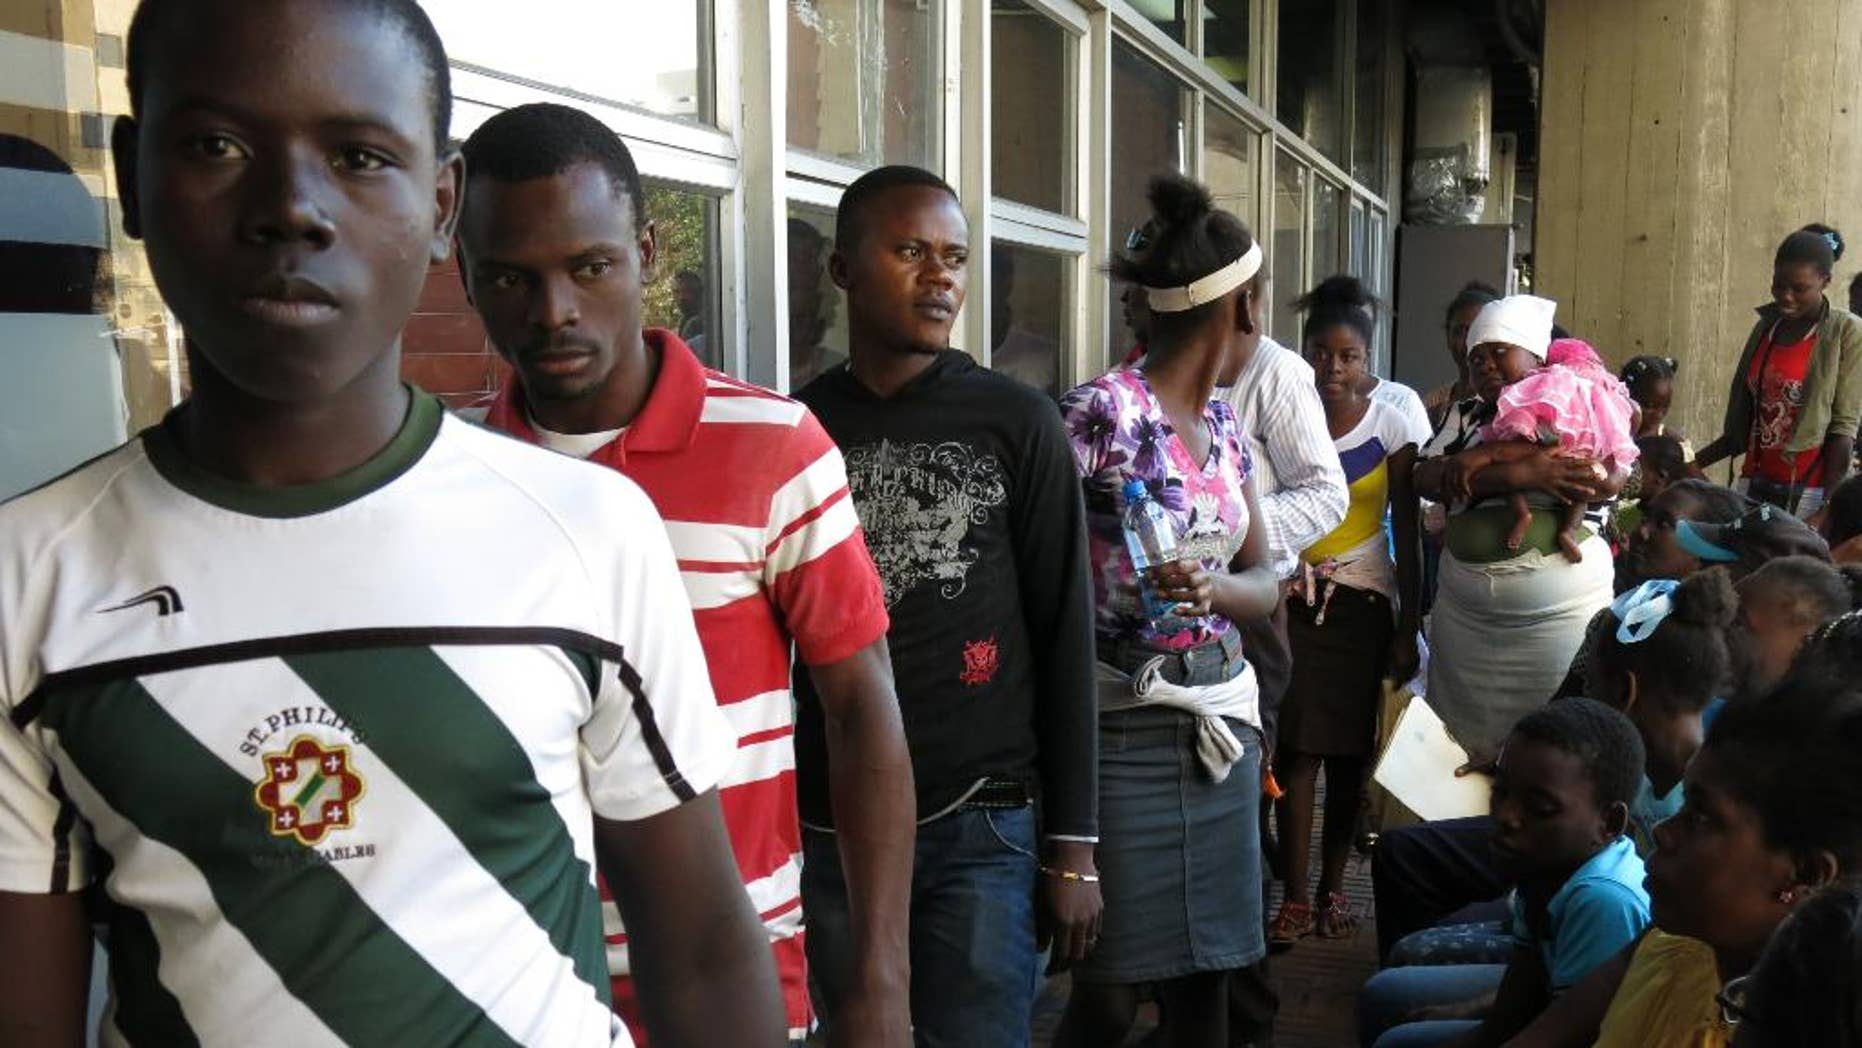 People of Haitian descent born in the Dominican Republic stand in line to apply for a birth certificate listing them as foreigners, in Santo Domingo, Dominican Republic, Thursday, Jan. 29, 2015. The government says people have until Feb. 1 to apply for birth certificates as foreigners, needed to gain legal status. (AP Photo/Ezequiel Abiu Lopez)